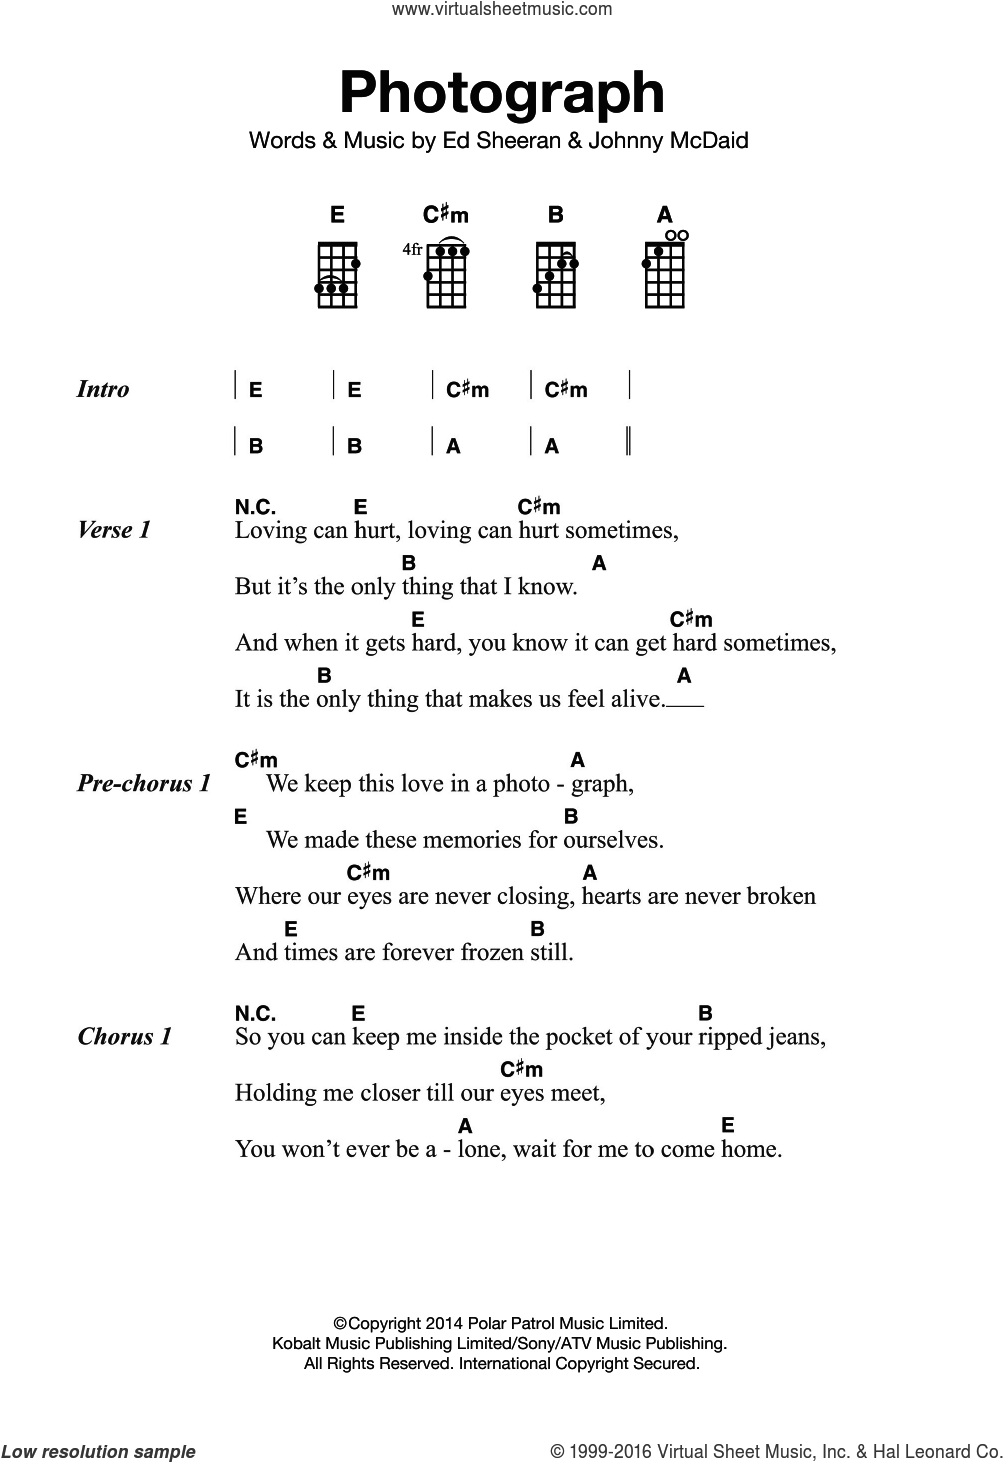 Sheeran Photograph Sheet Music For Ukulele Pdf